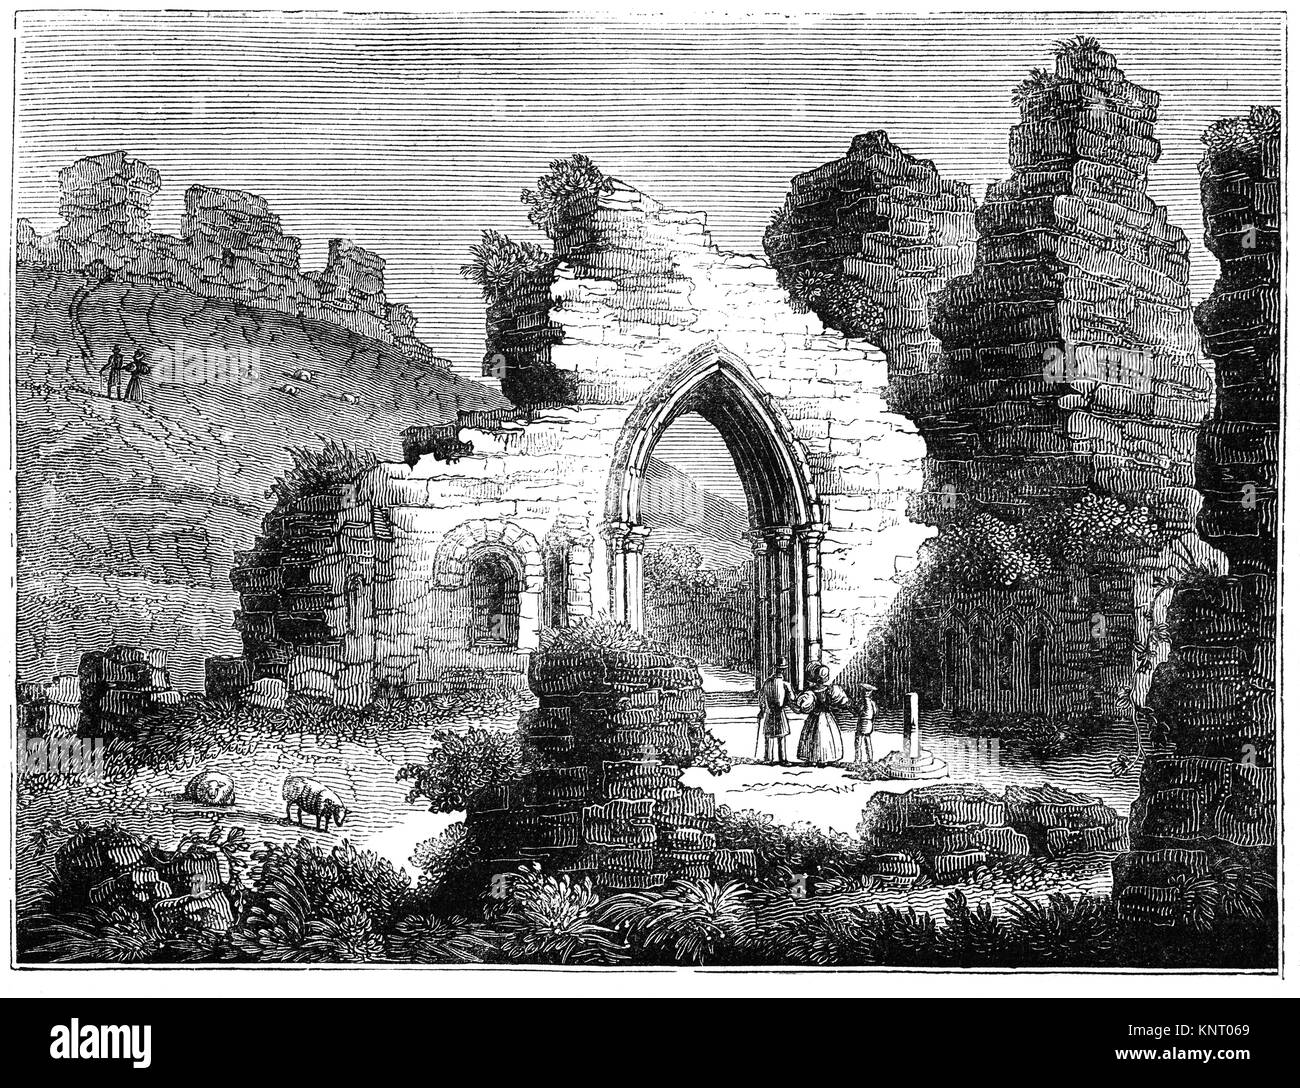 Sheep and visitors amidst the ruined 11th Century Norman walls of St Mary's Chapel below the Castle of Hastings, - Stock Image